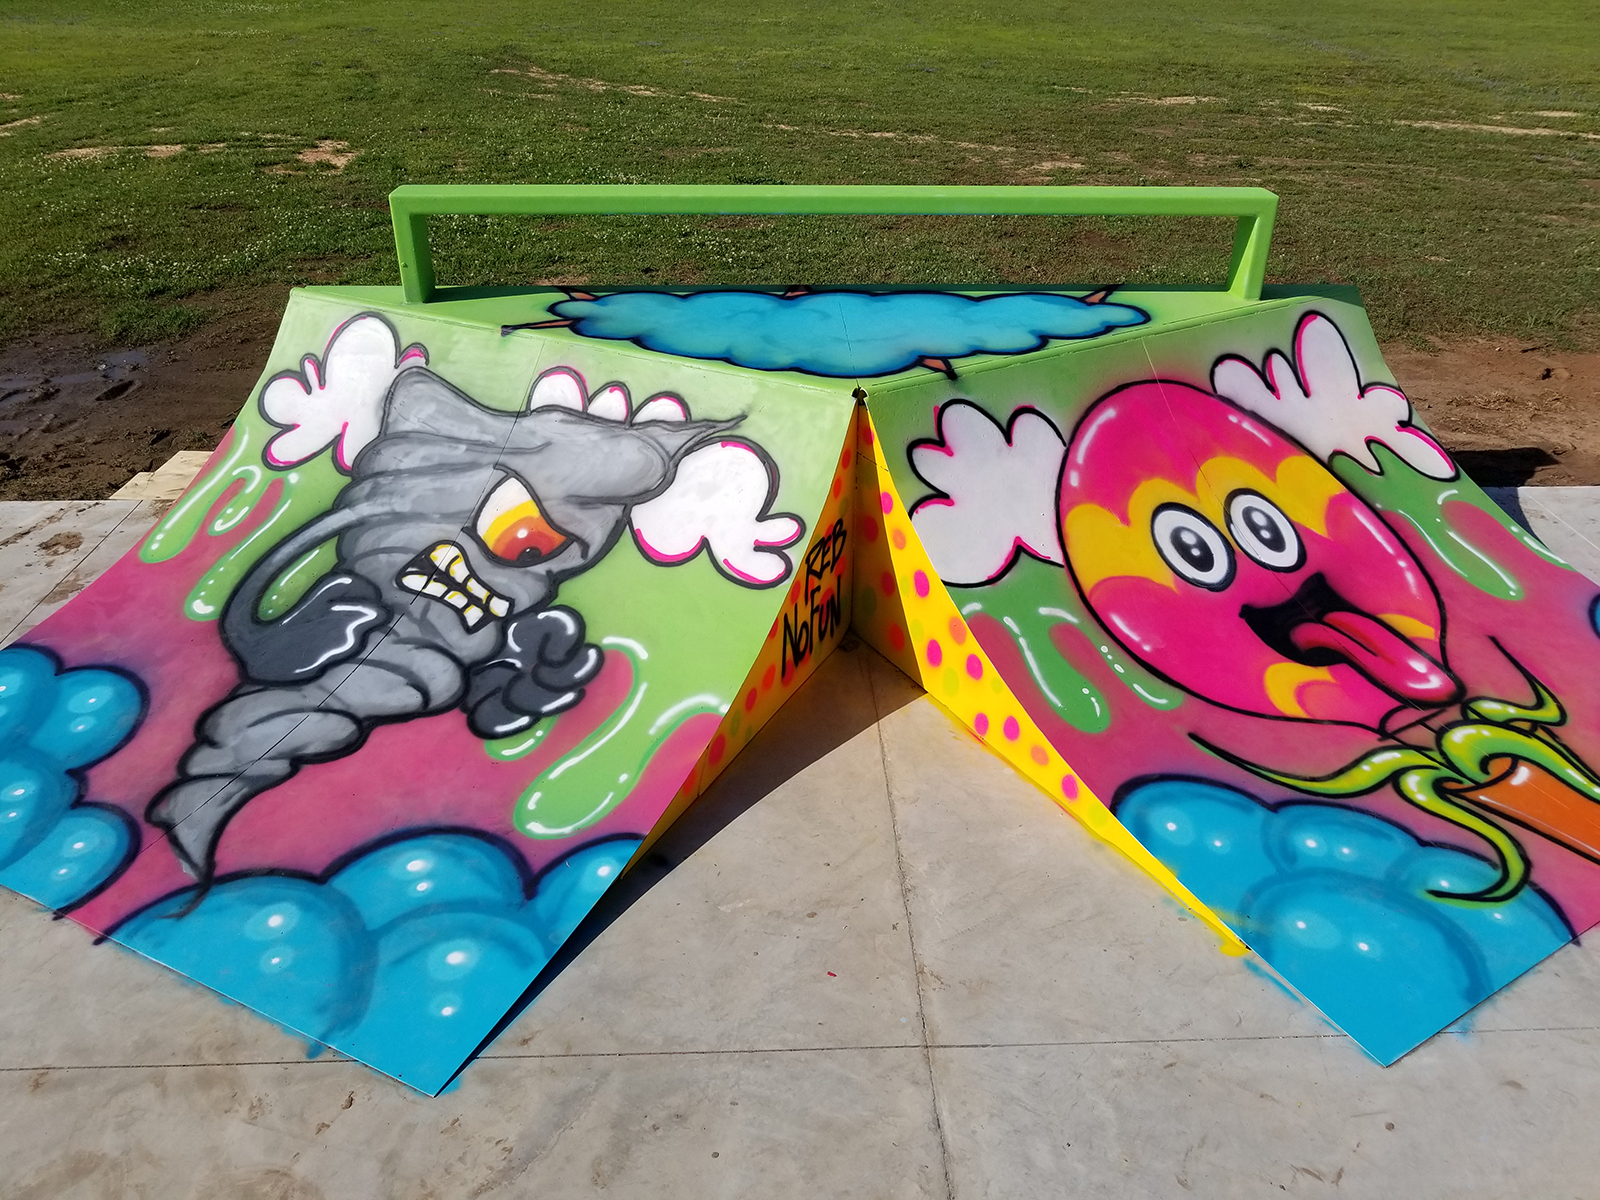 You are currently viewing CRE8NSK8 | Art at the Skate Park